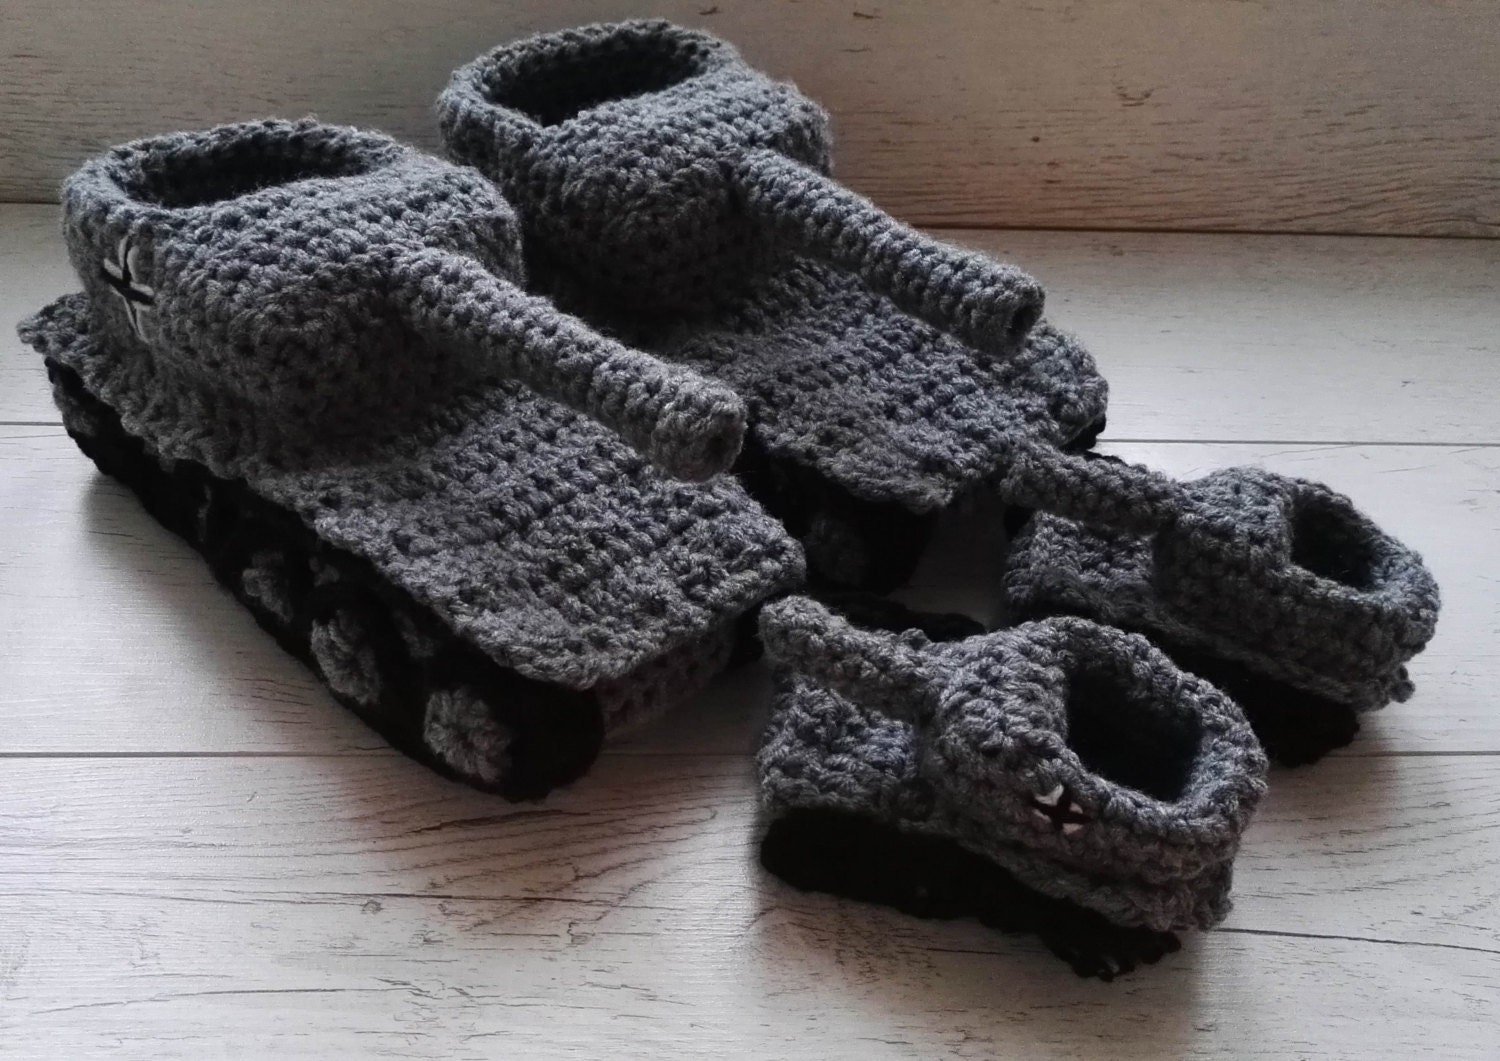 Fluffy Slippers for the Military Parade | IMDB v2.0